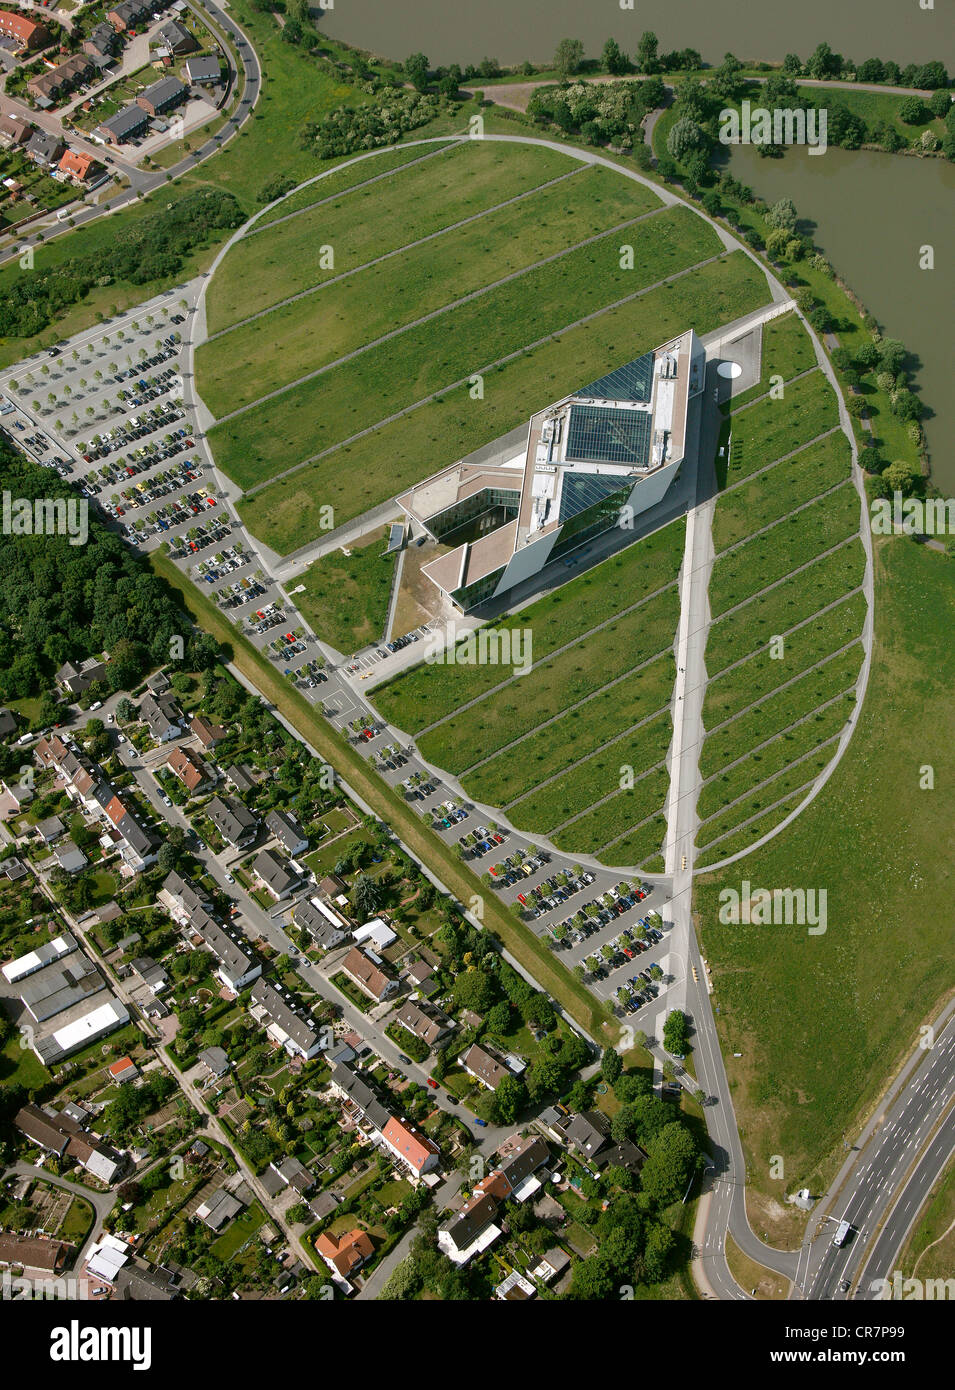 Aerial view, VW AutoUni institute, MobileLifeCampus, Volkswagen plant, VW factory, Autostadt visitor attraction, - Stock Image